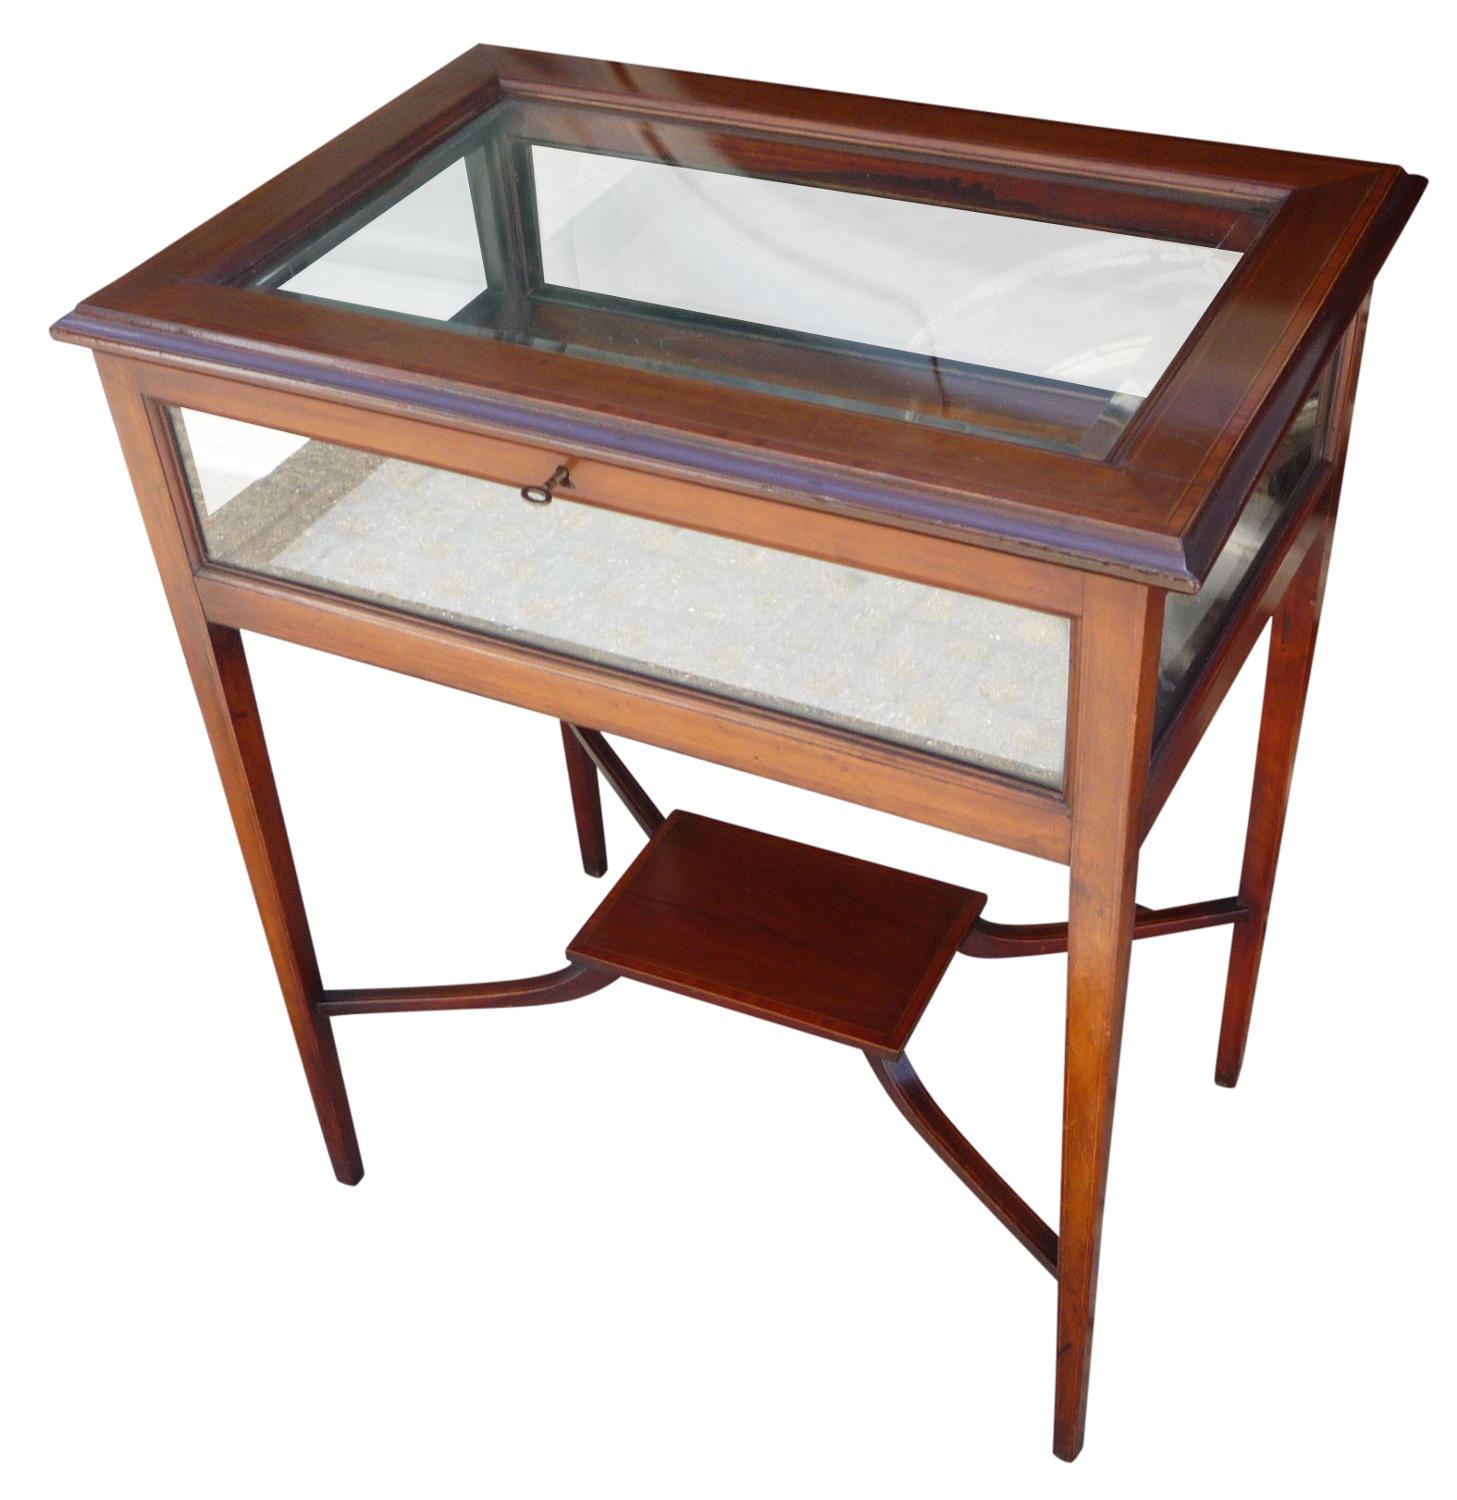 Edwardian inlatd mahogany display table c1910